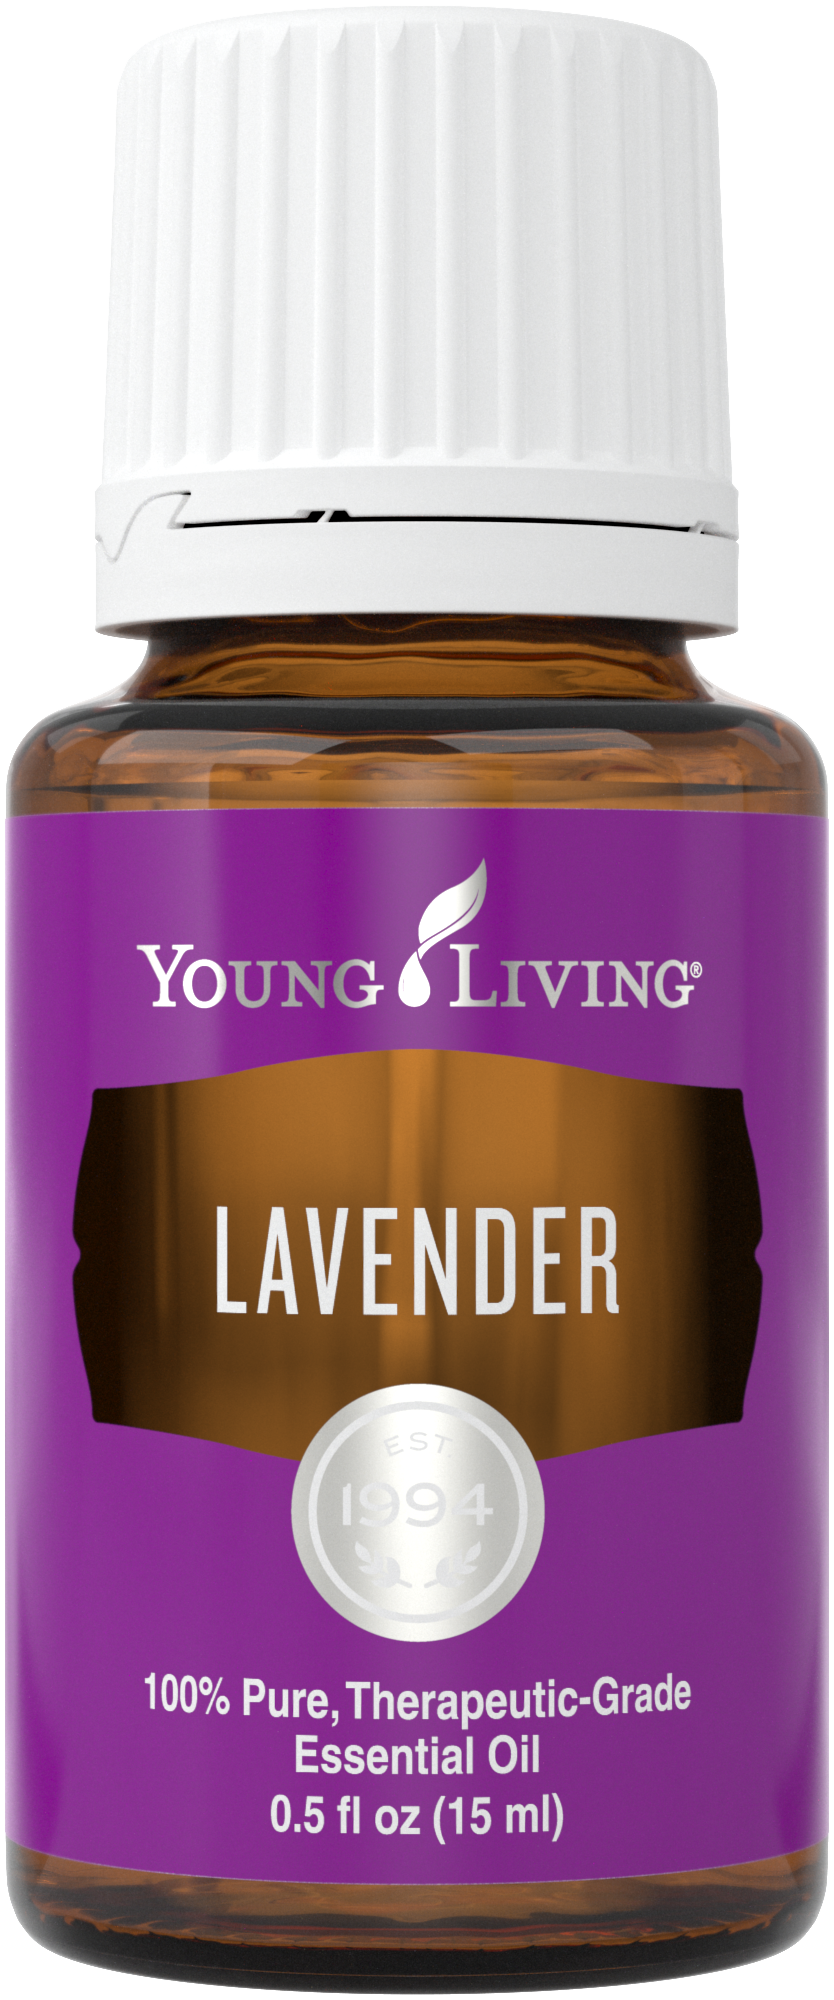 Lavender essential oil uses | Young Living